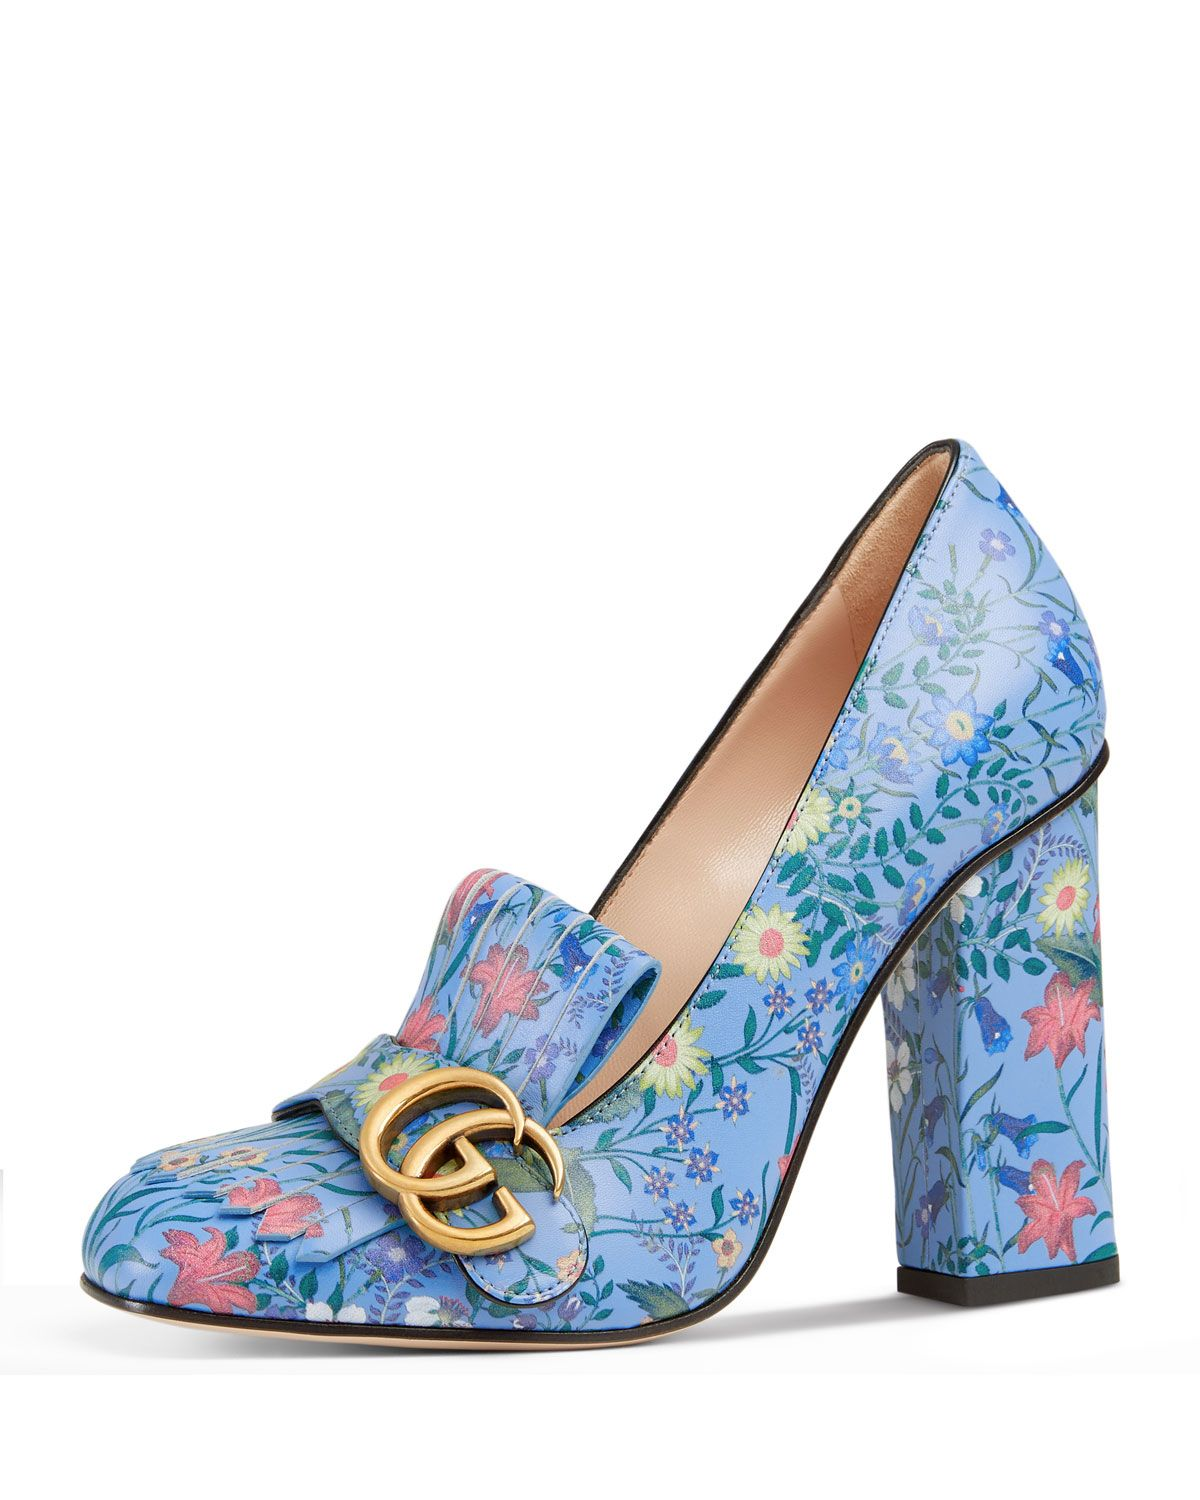 82dfe43d6 Marmont New Floral Loafer Pump Blue Pattern in 2019 | shoes Gucci ...